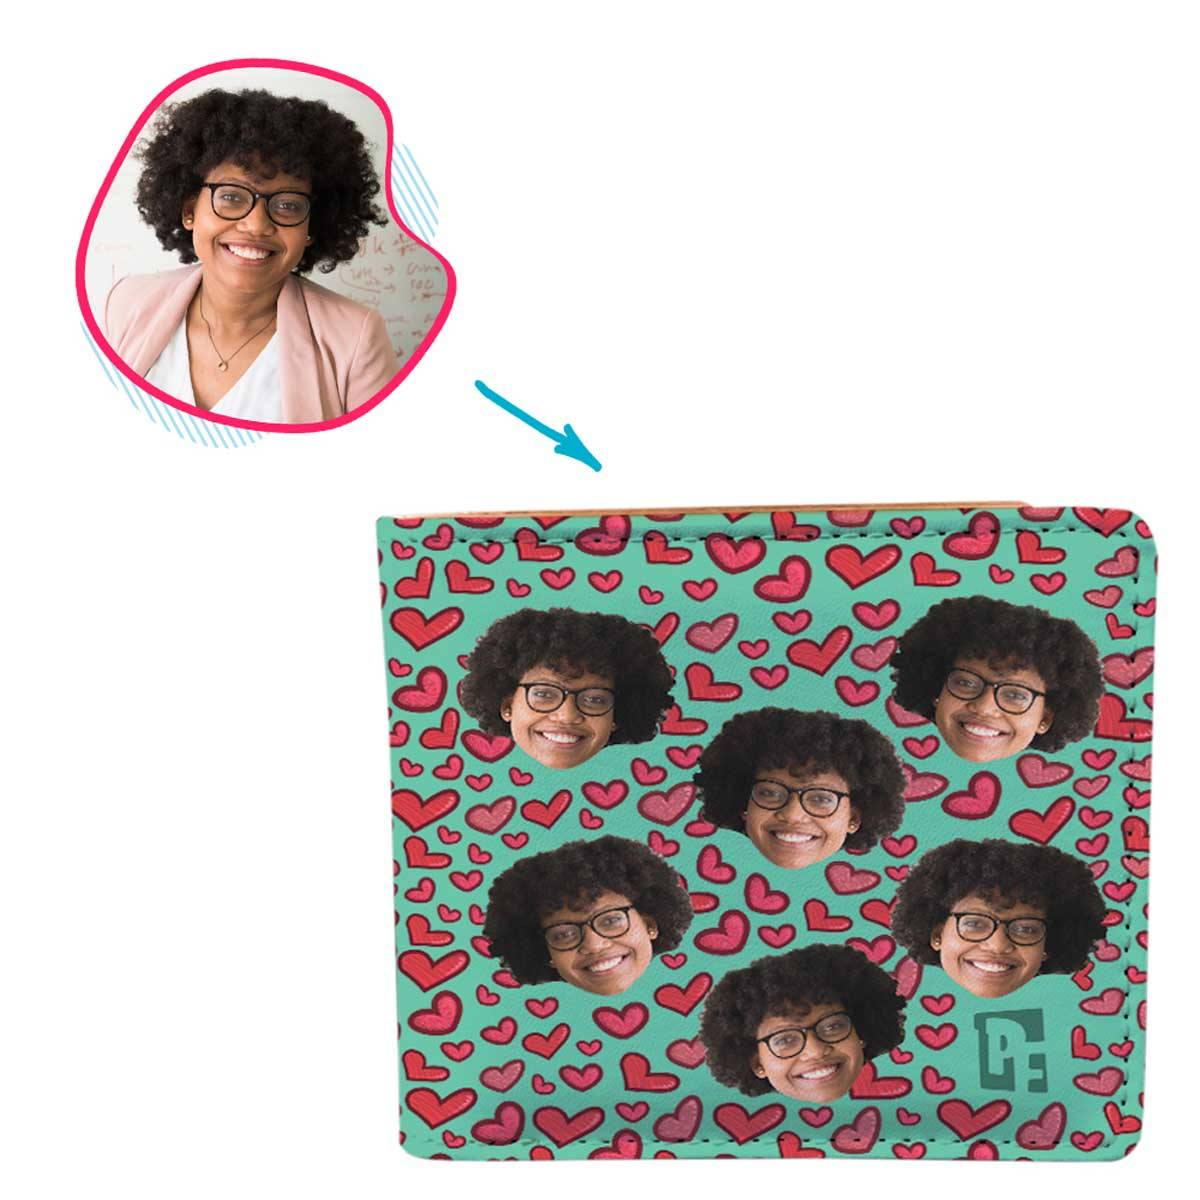 mint Heart wallet personalized with photo of face printed on it